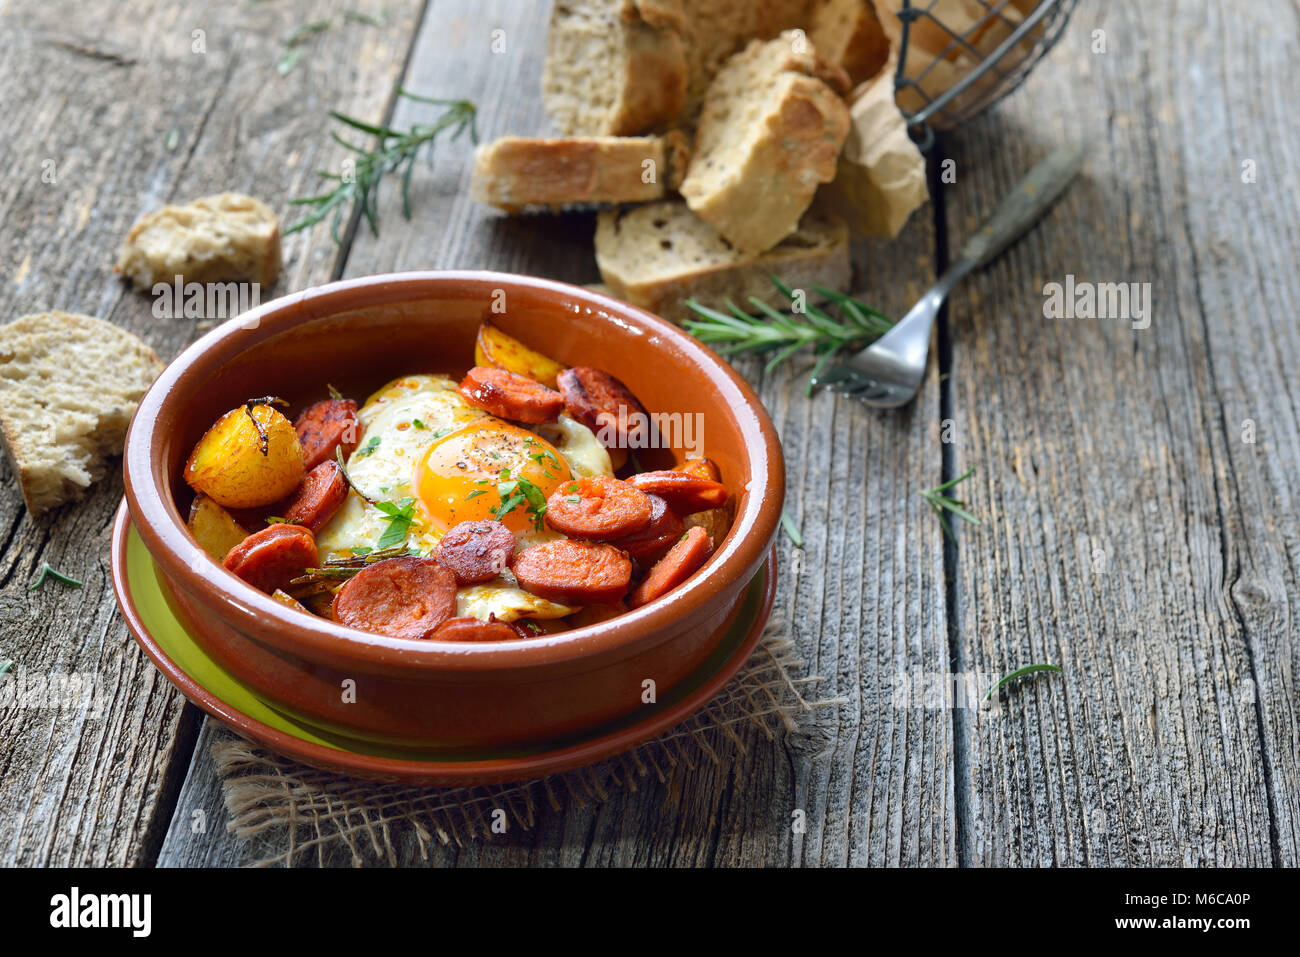 Spanish tapa: Spicy chorizo sausage with fried egg and baby potatoes served in a terra cotta cazuela dish Stock Photo